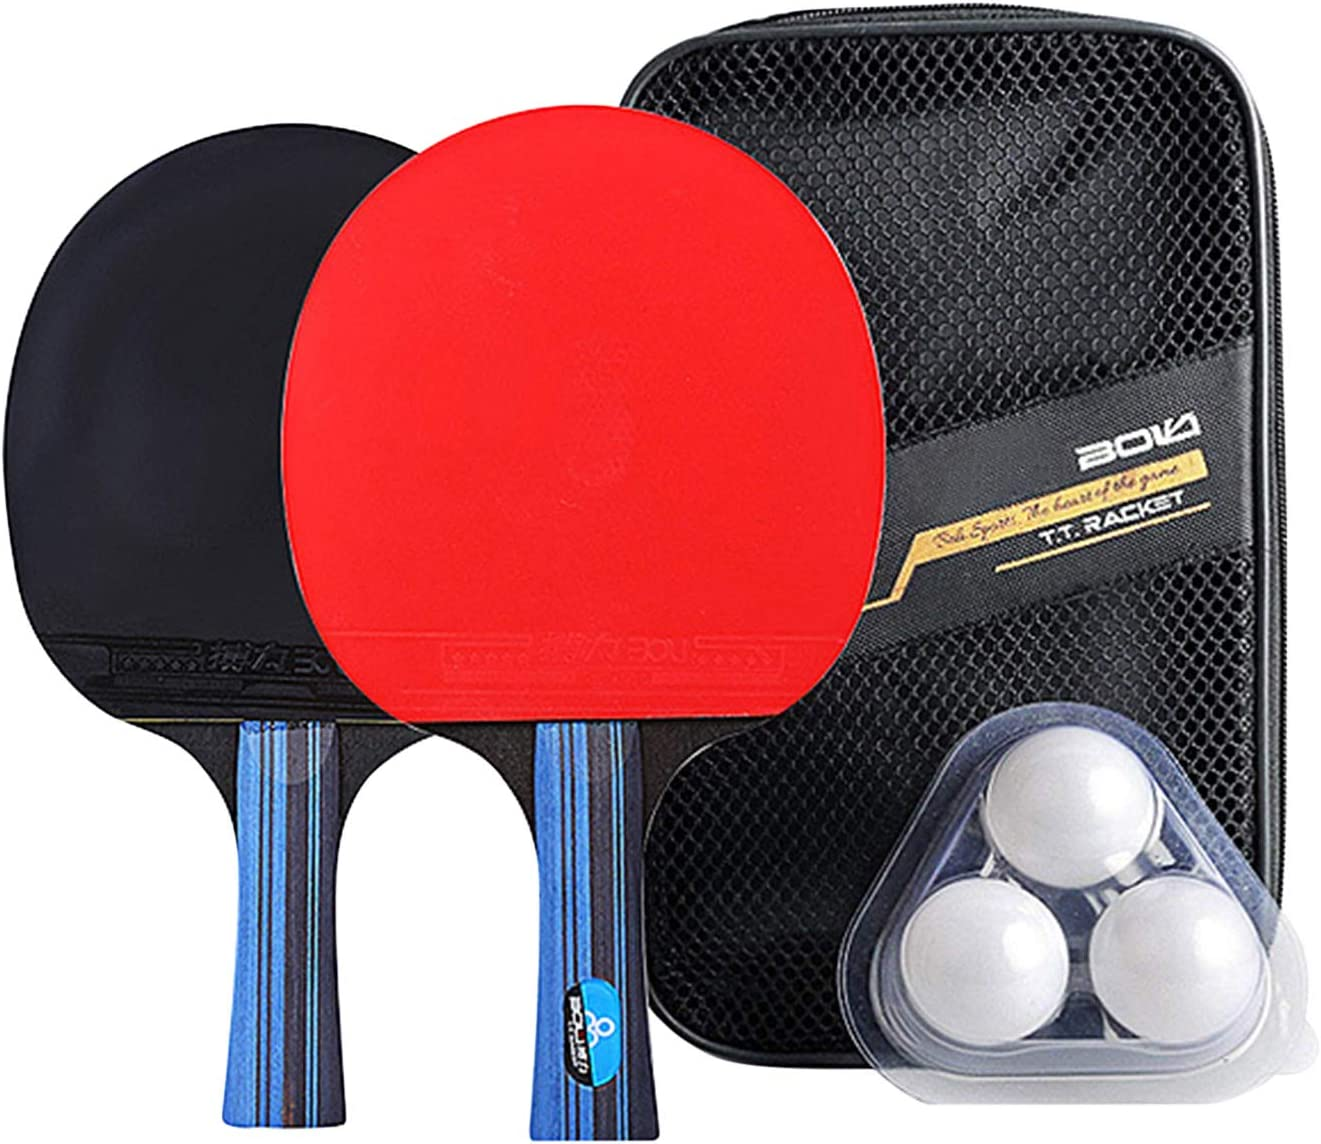 Olinase Professional Table Tennis online shop Set Pingpong Rack Discount is also underway Paddles with